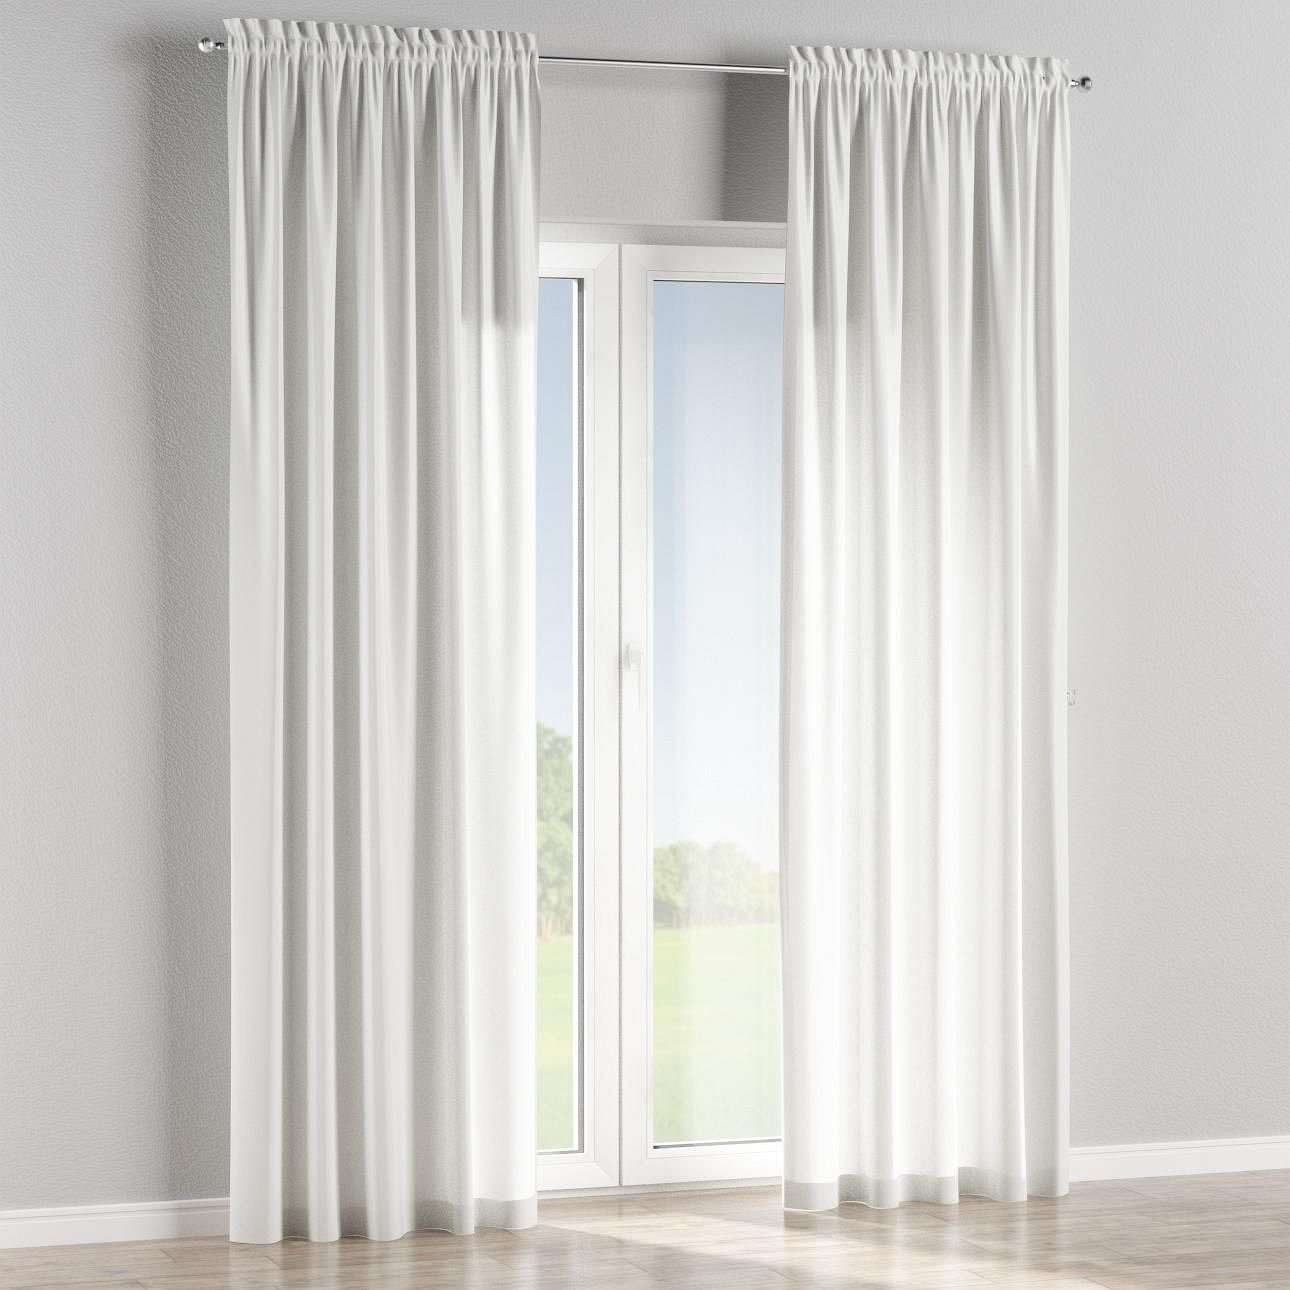 Slot and frill lined curtains in collection Nordic, fabric: 630-08